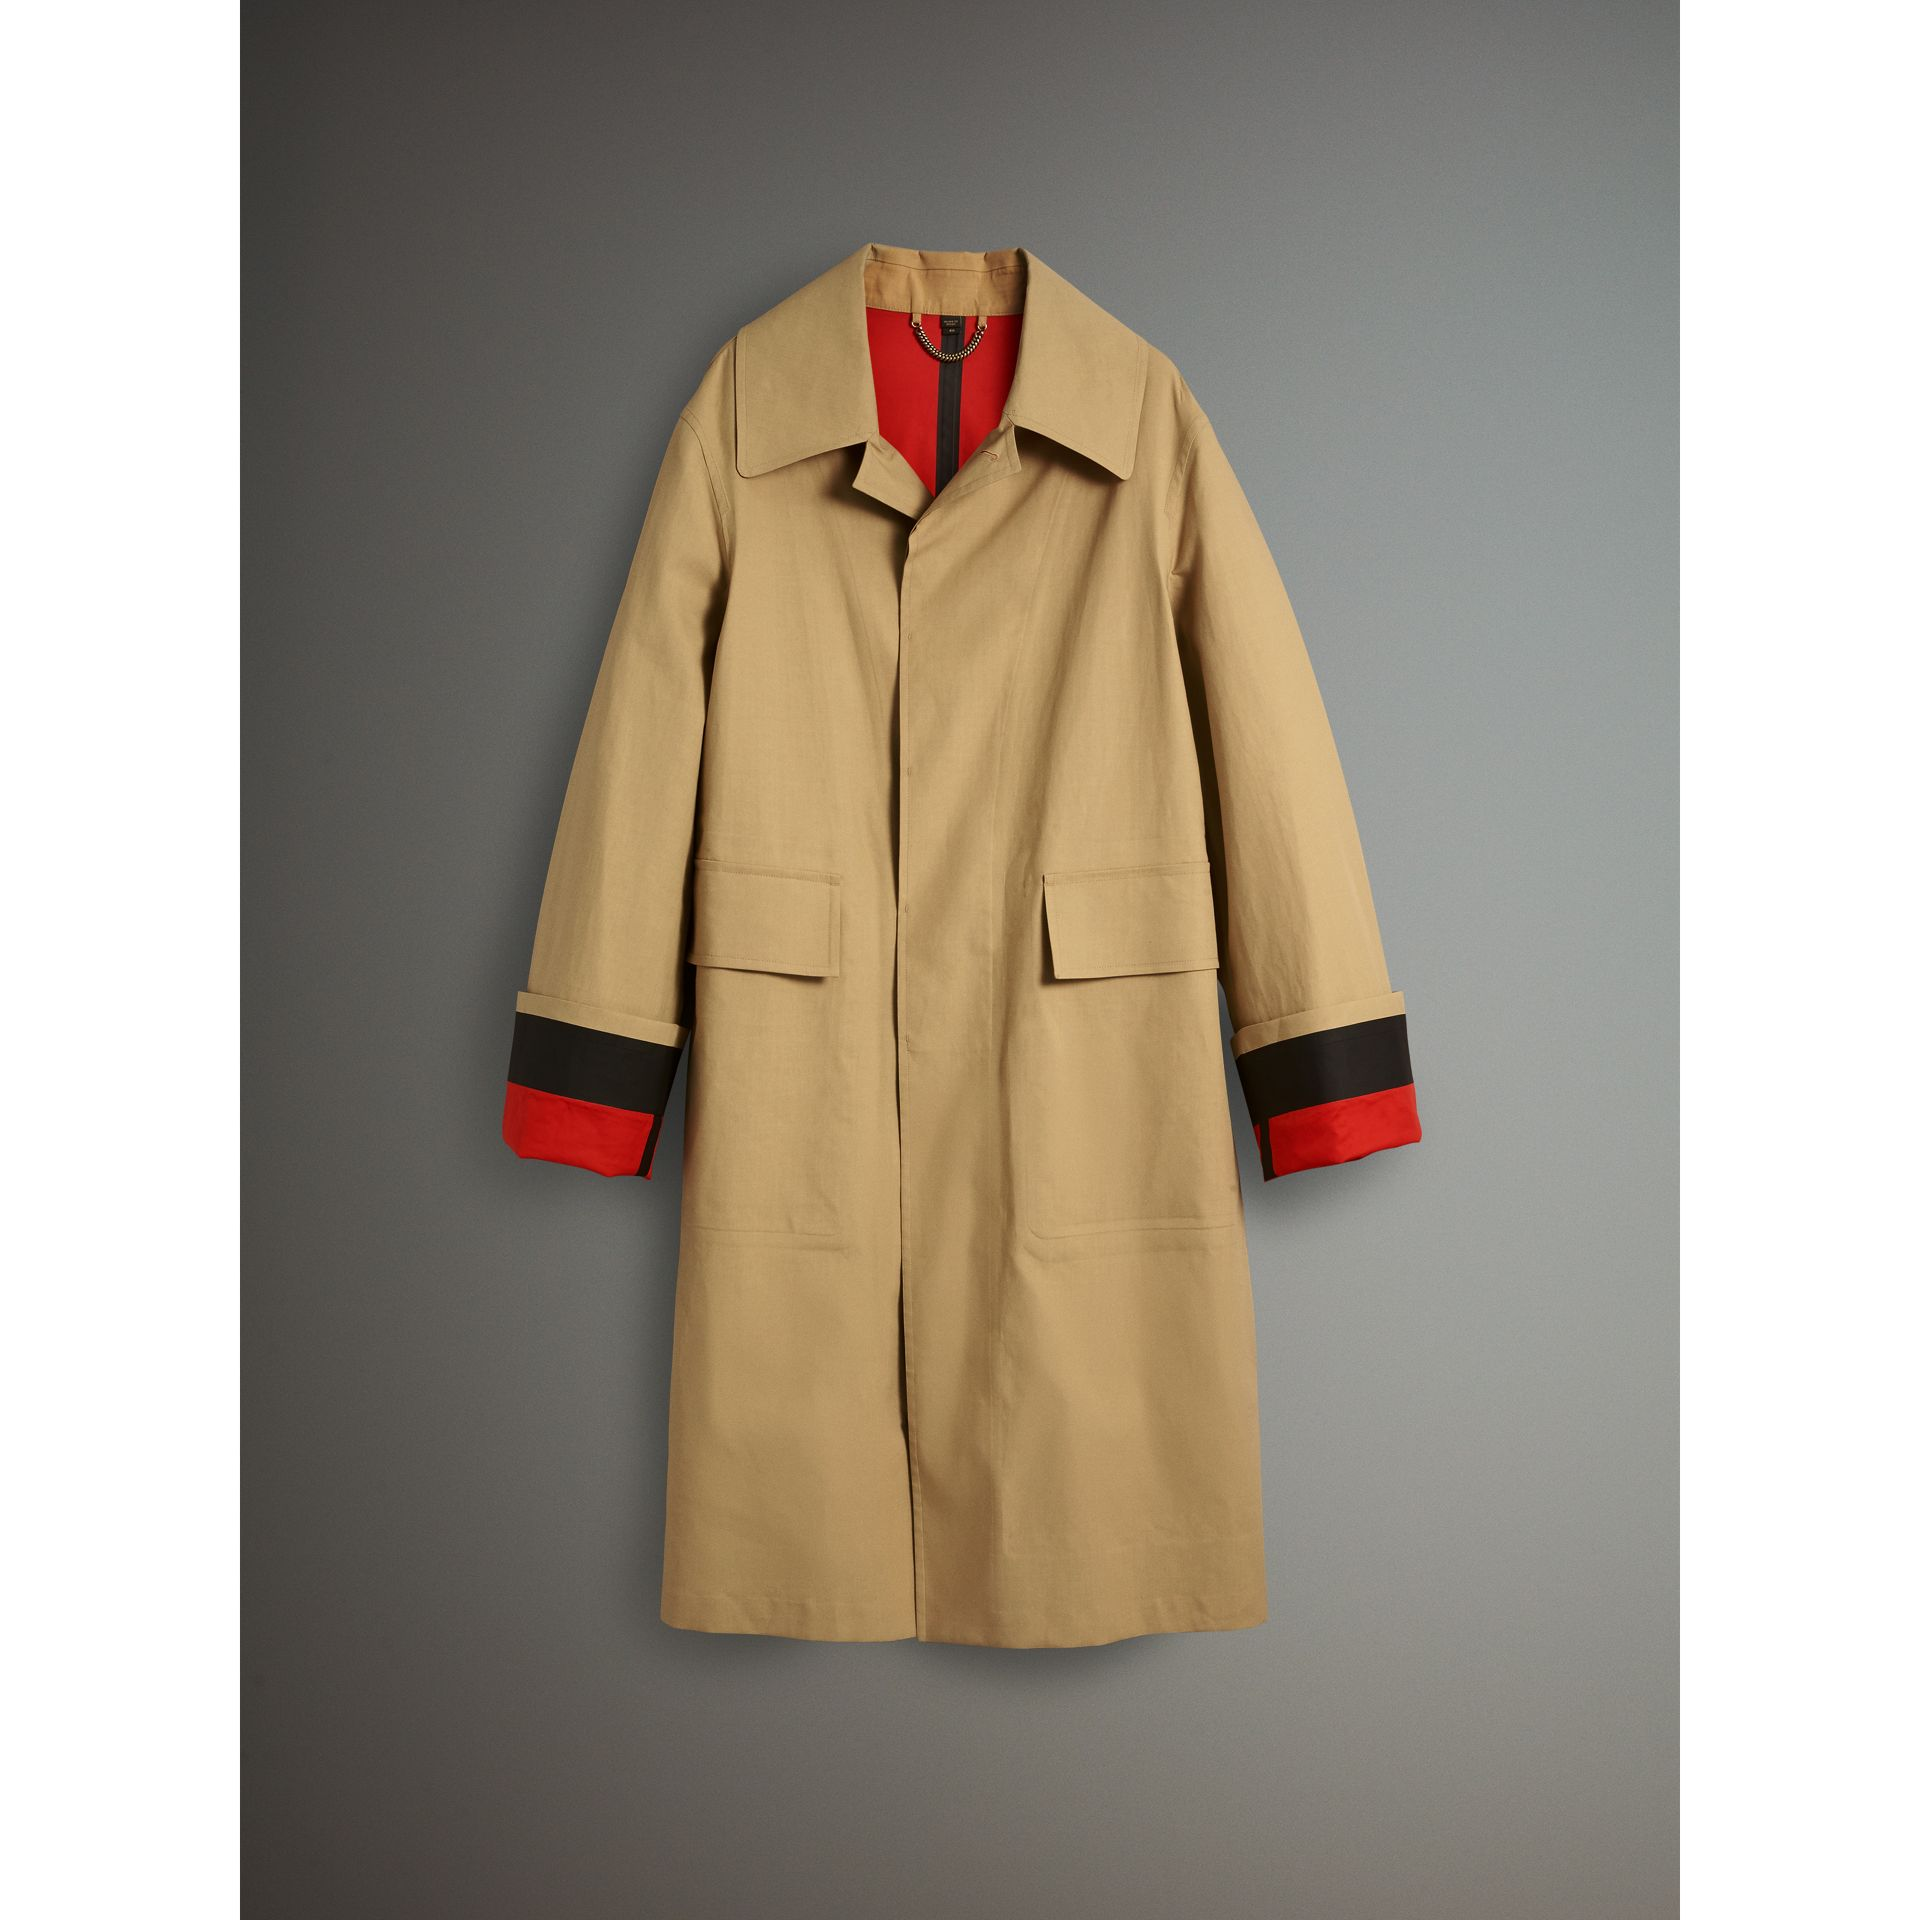 Bonded Cotton Oversized Seam-sealed Car Coat in Beige/red - Men | Burberry Singapore - gallery image 4